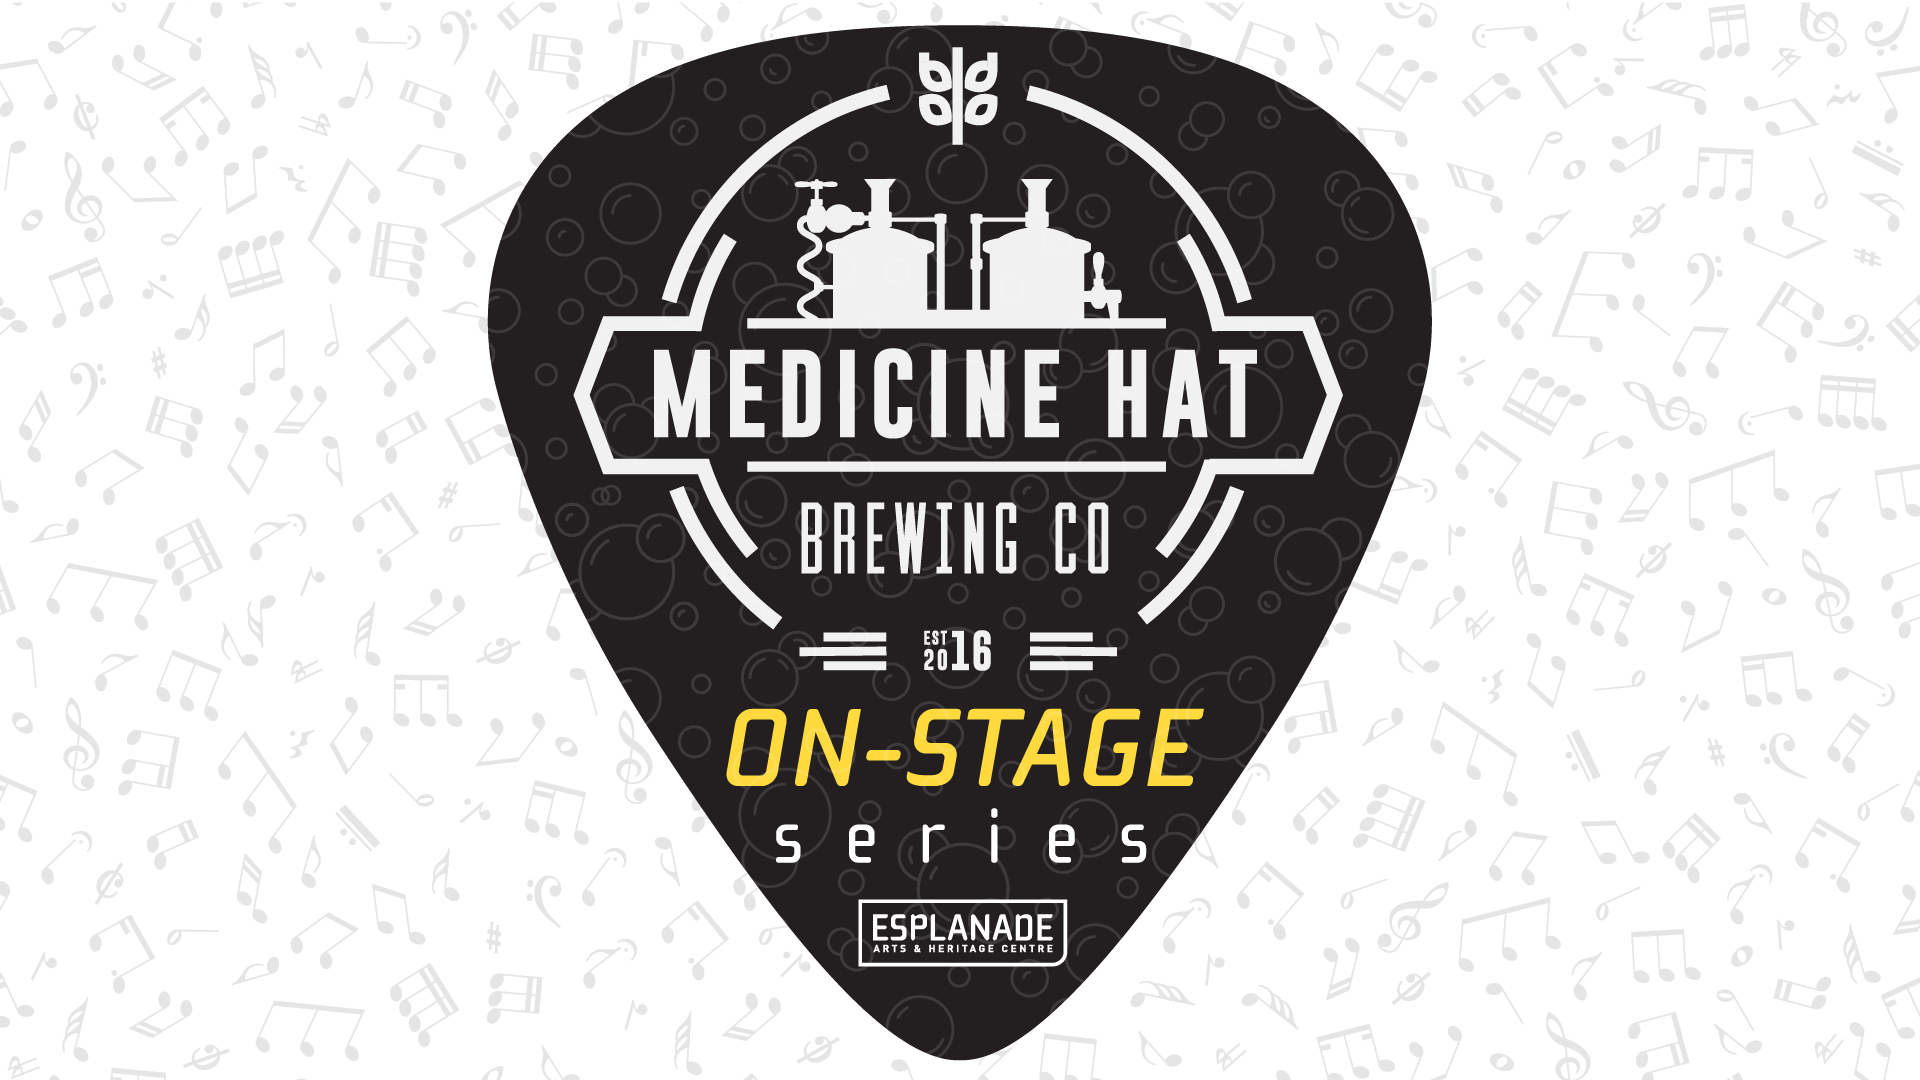 Medicine Hat Brewing Co On-Stage Series